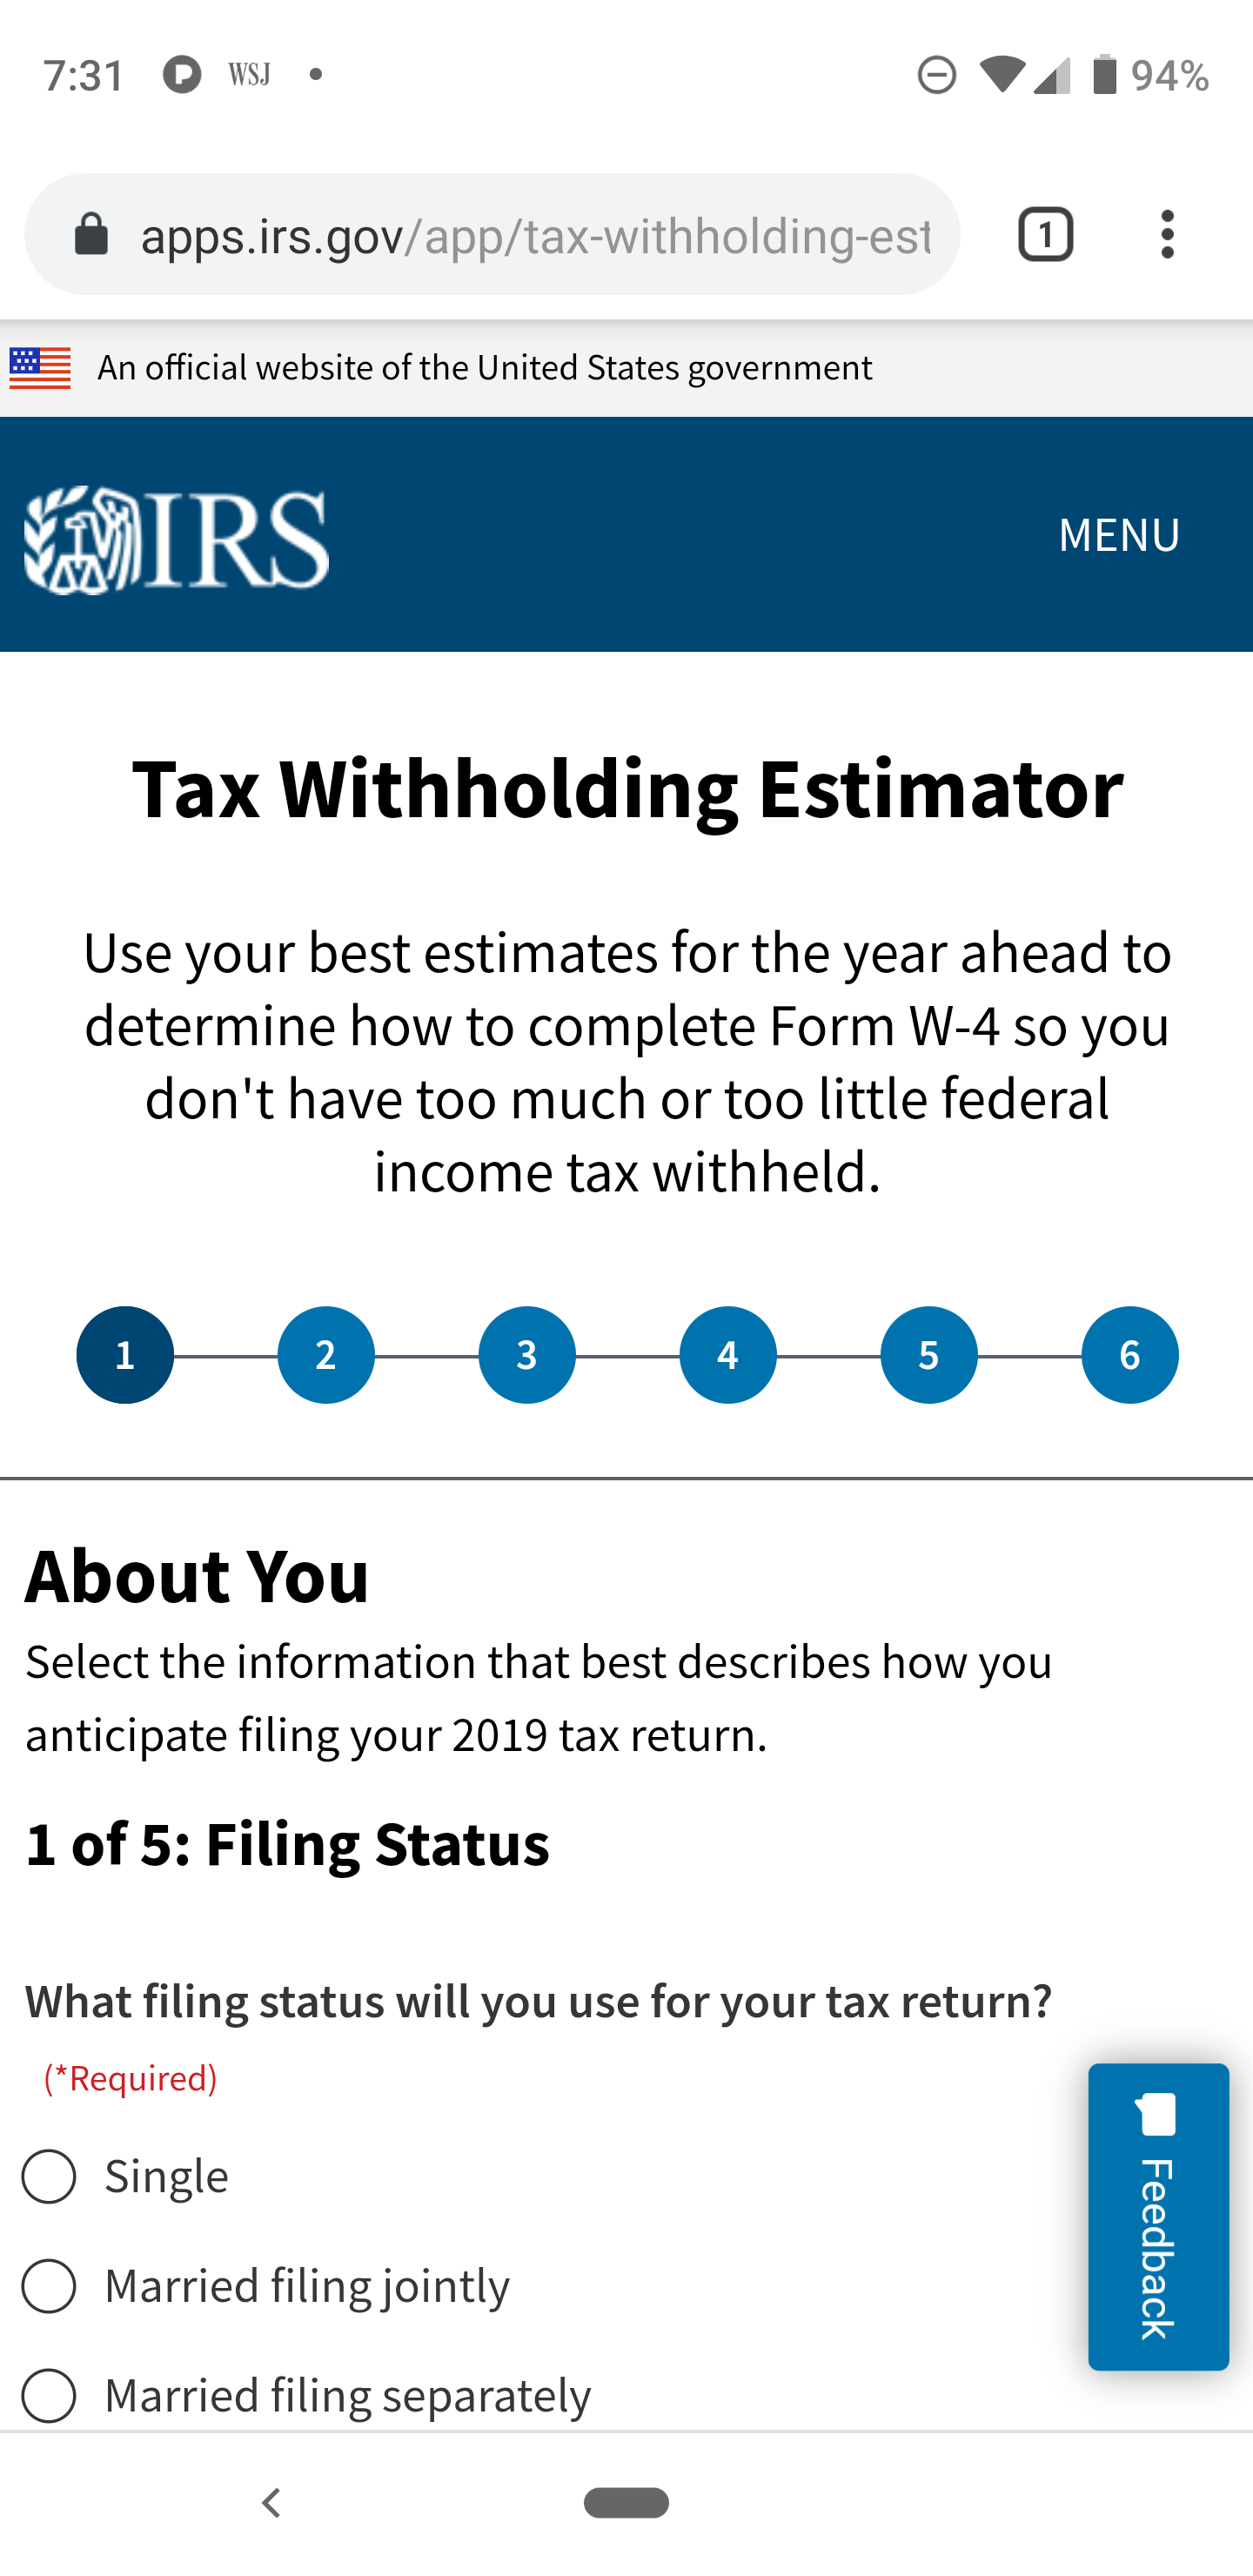 IRS Withholding Tax Estimator on a phone display